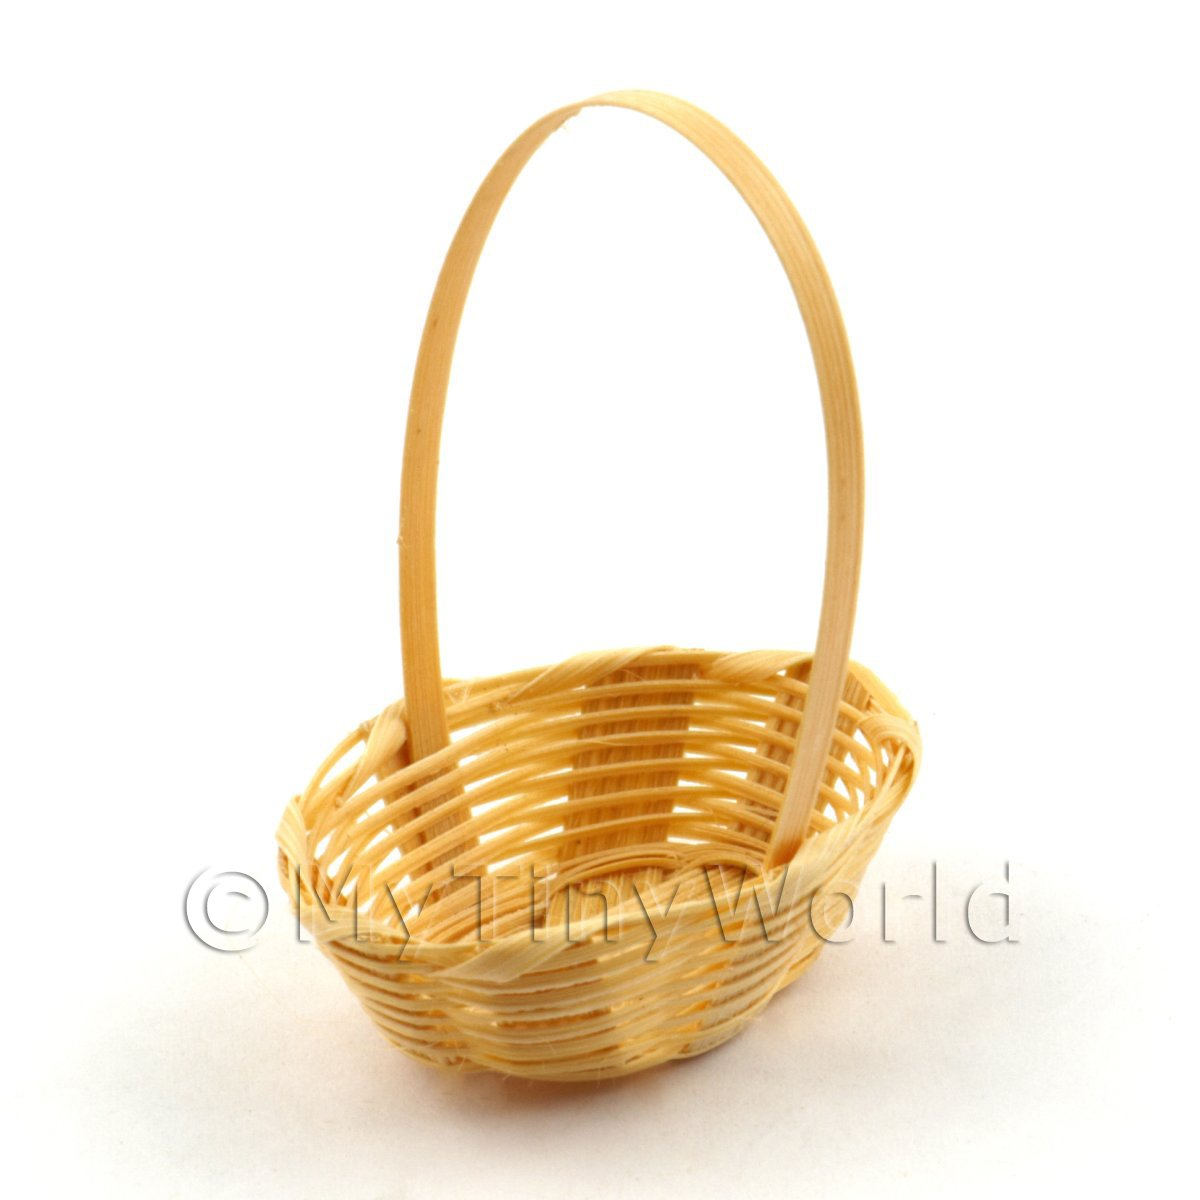 Tiny Wicker Basket With Handle : Dolls house miniature kitchenware